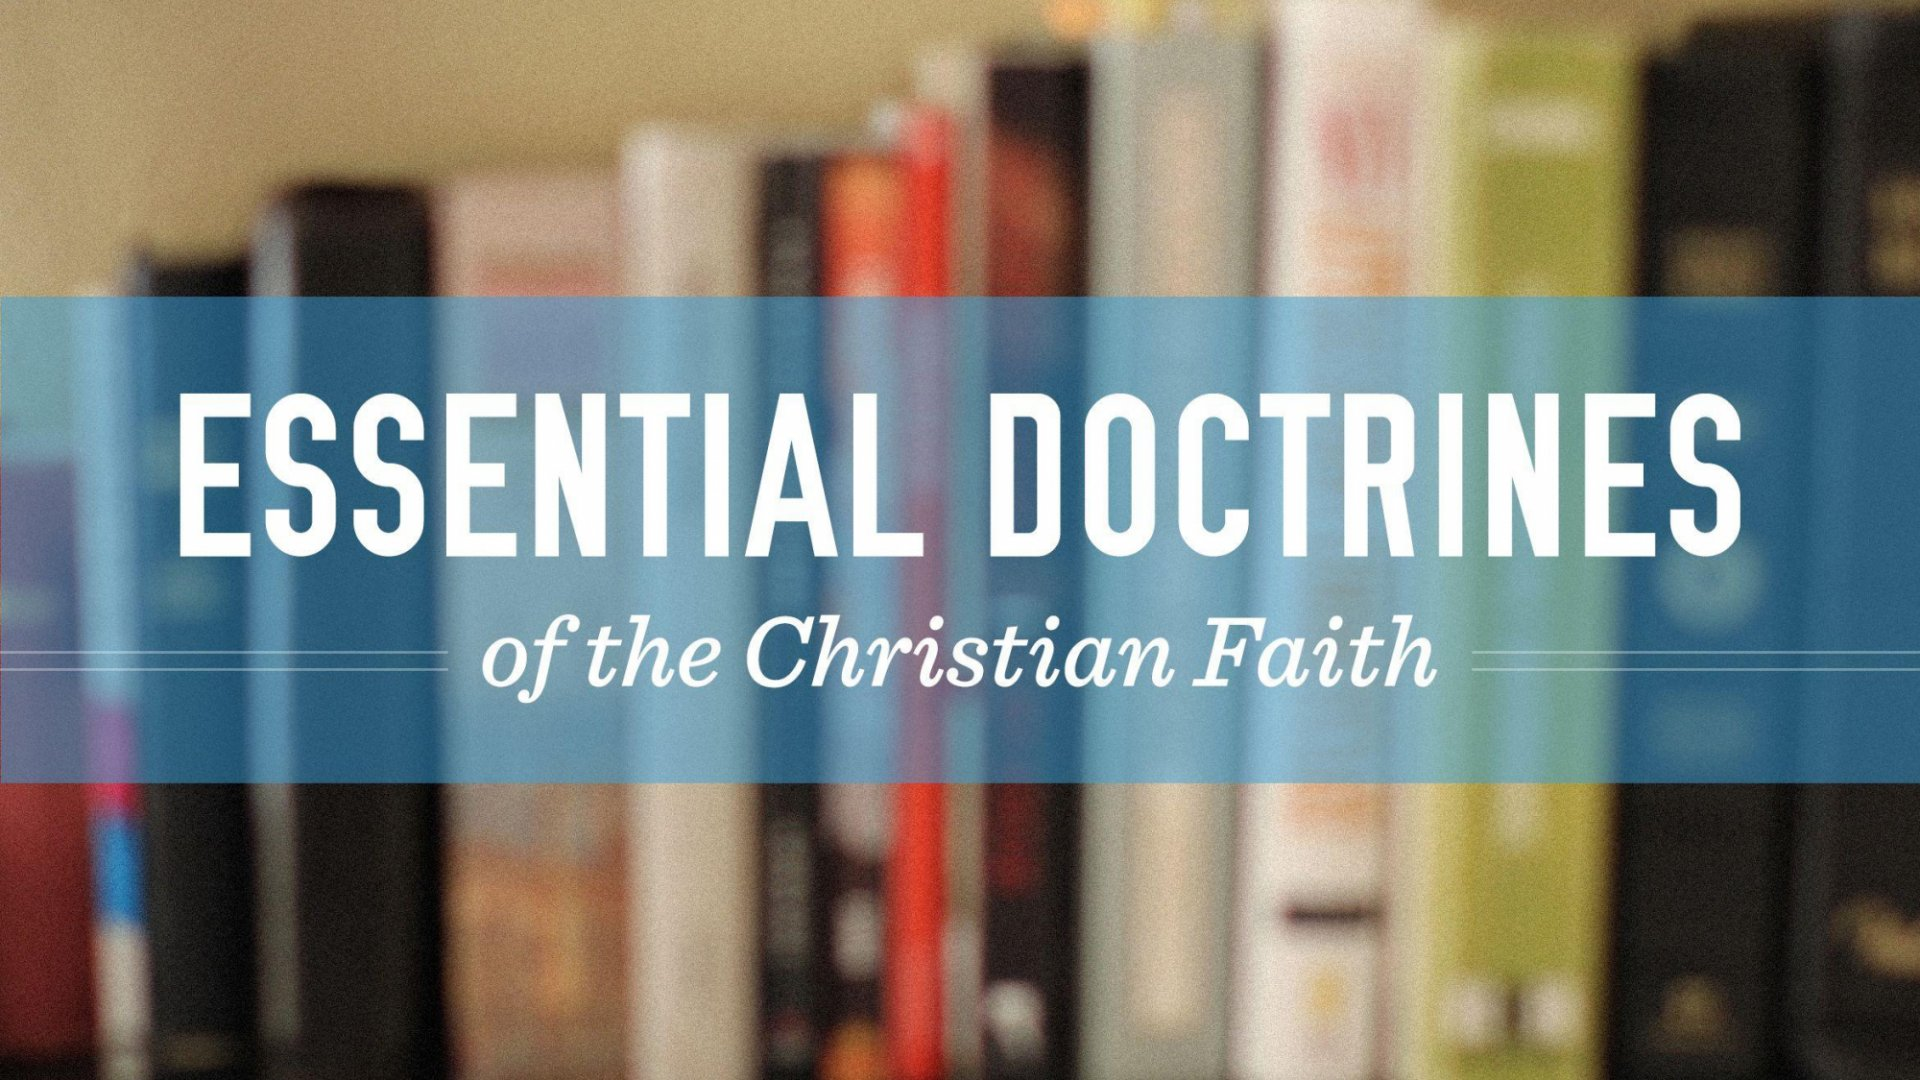 Teaching artwork for Essential Doctrines